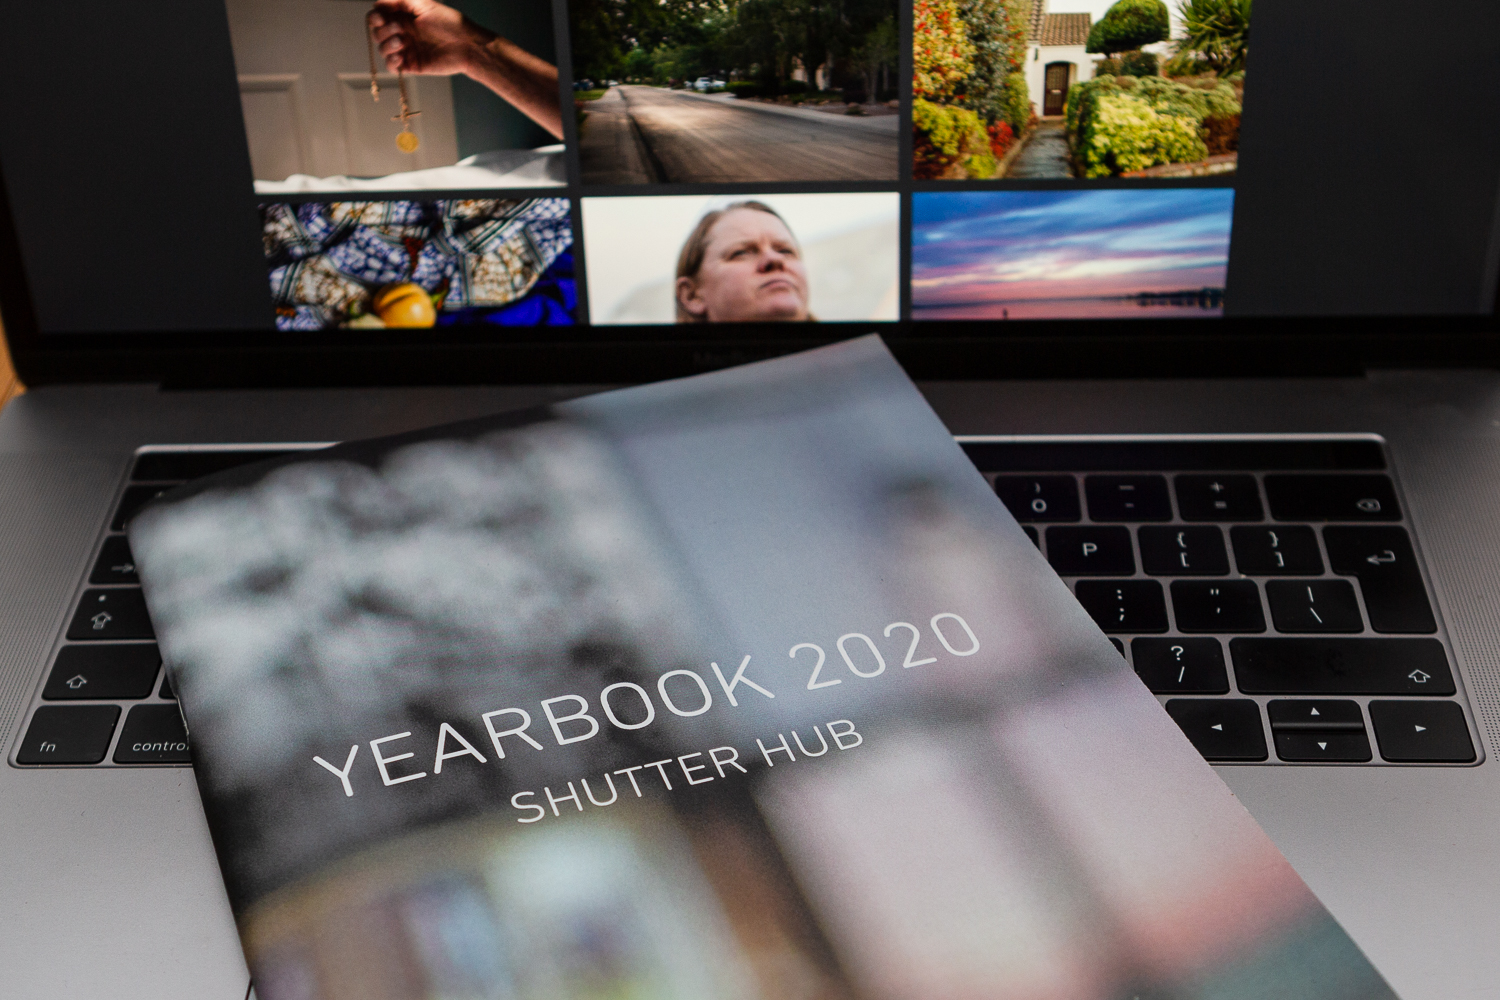 The YEARBOOK 2020 publication lying on the keyboard of a laptop, with images from the online exhibition on the screen behind.